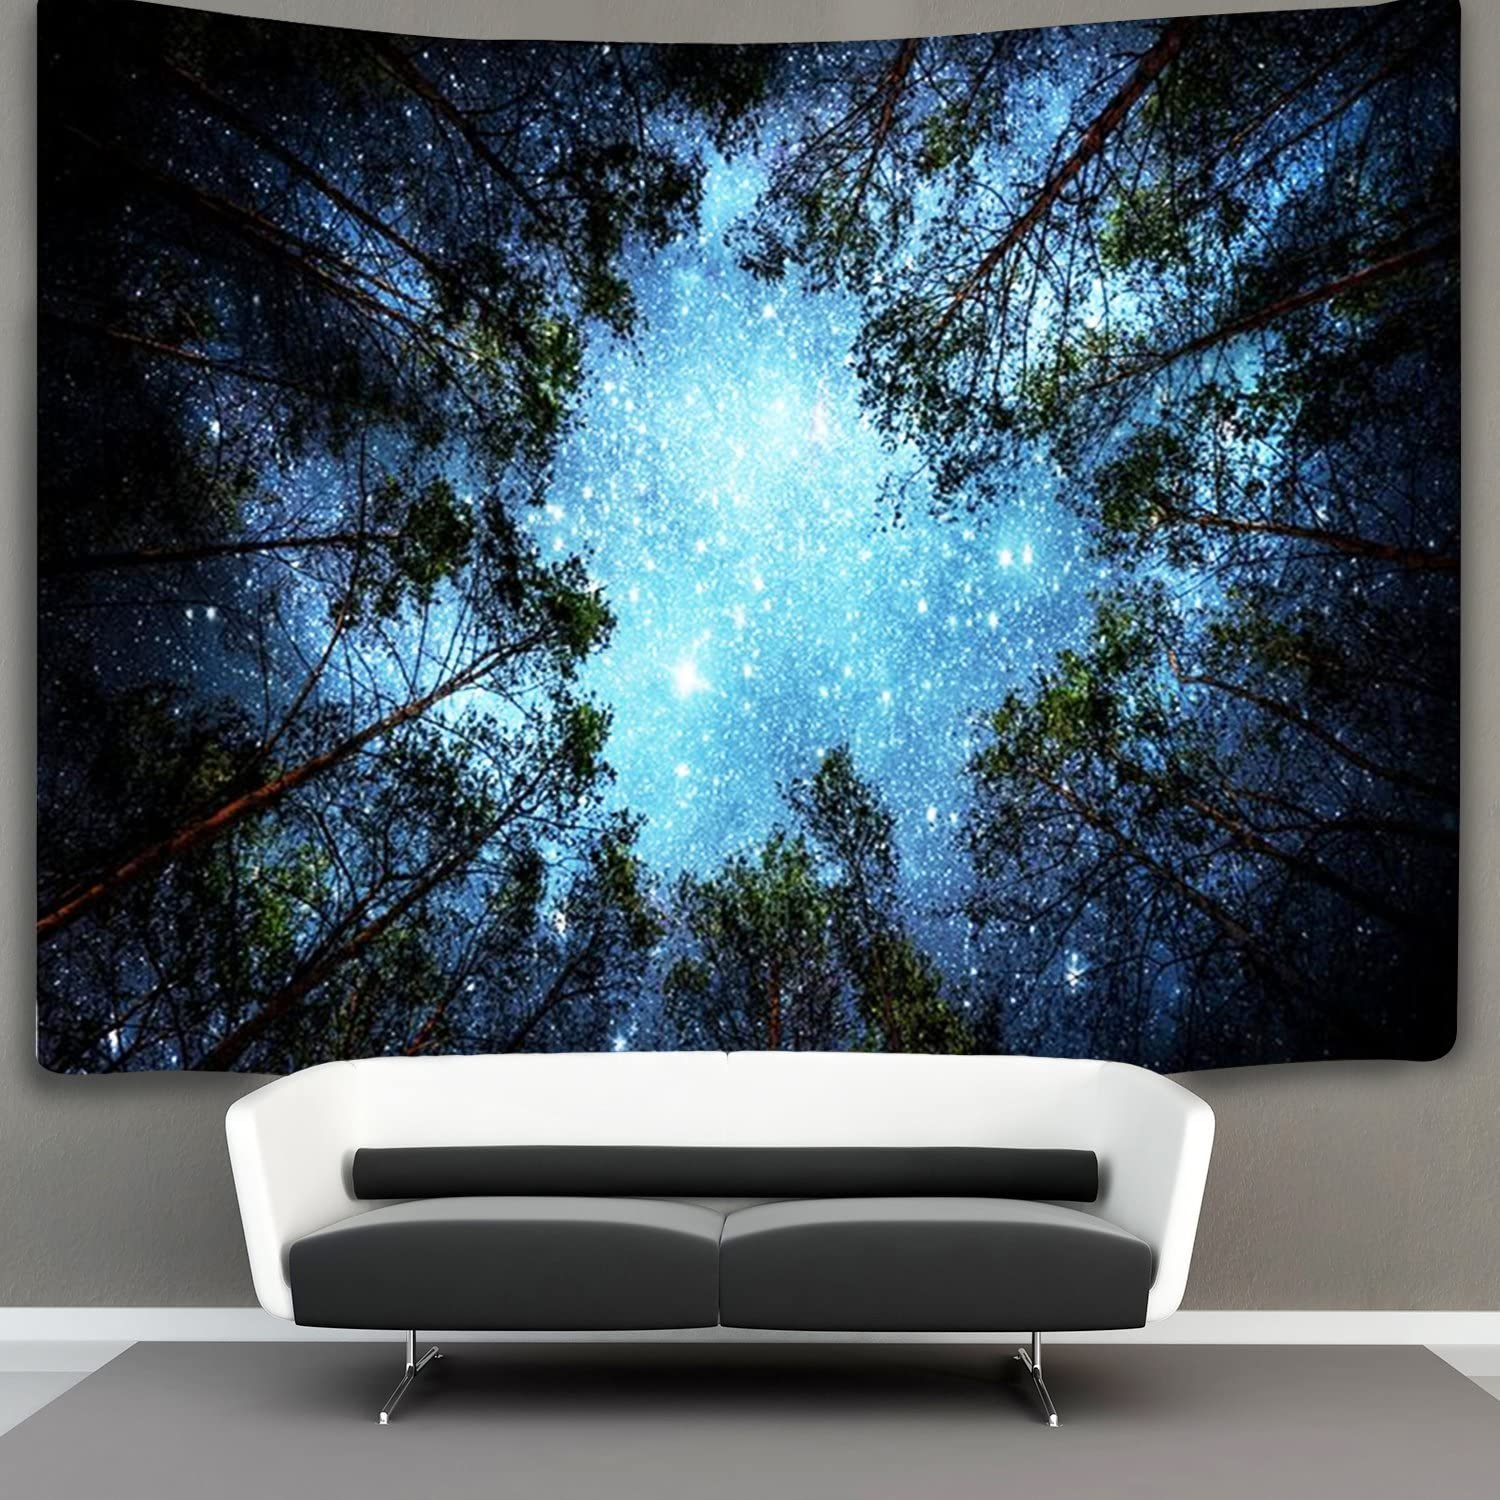 Forest Starry Tapestry Starry Sky Tapestry Moon and Stars Tapestry Galaxy Tapestry Wall Hanging Forest Tapestry Night Sky Tapestry Wall Tapestry for Dorm Living Room Bedroom (Small, forest Star)